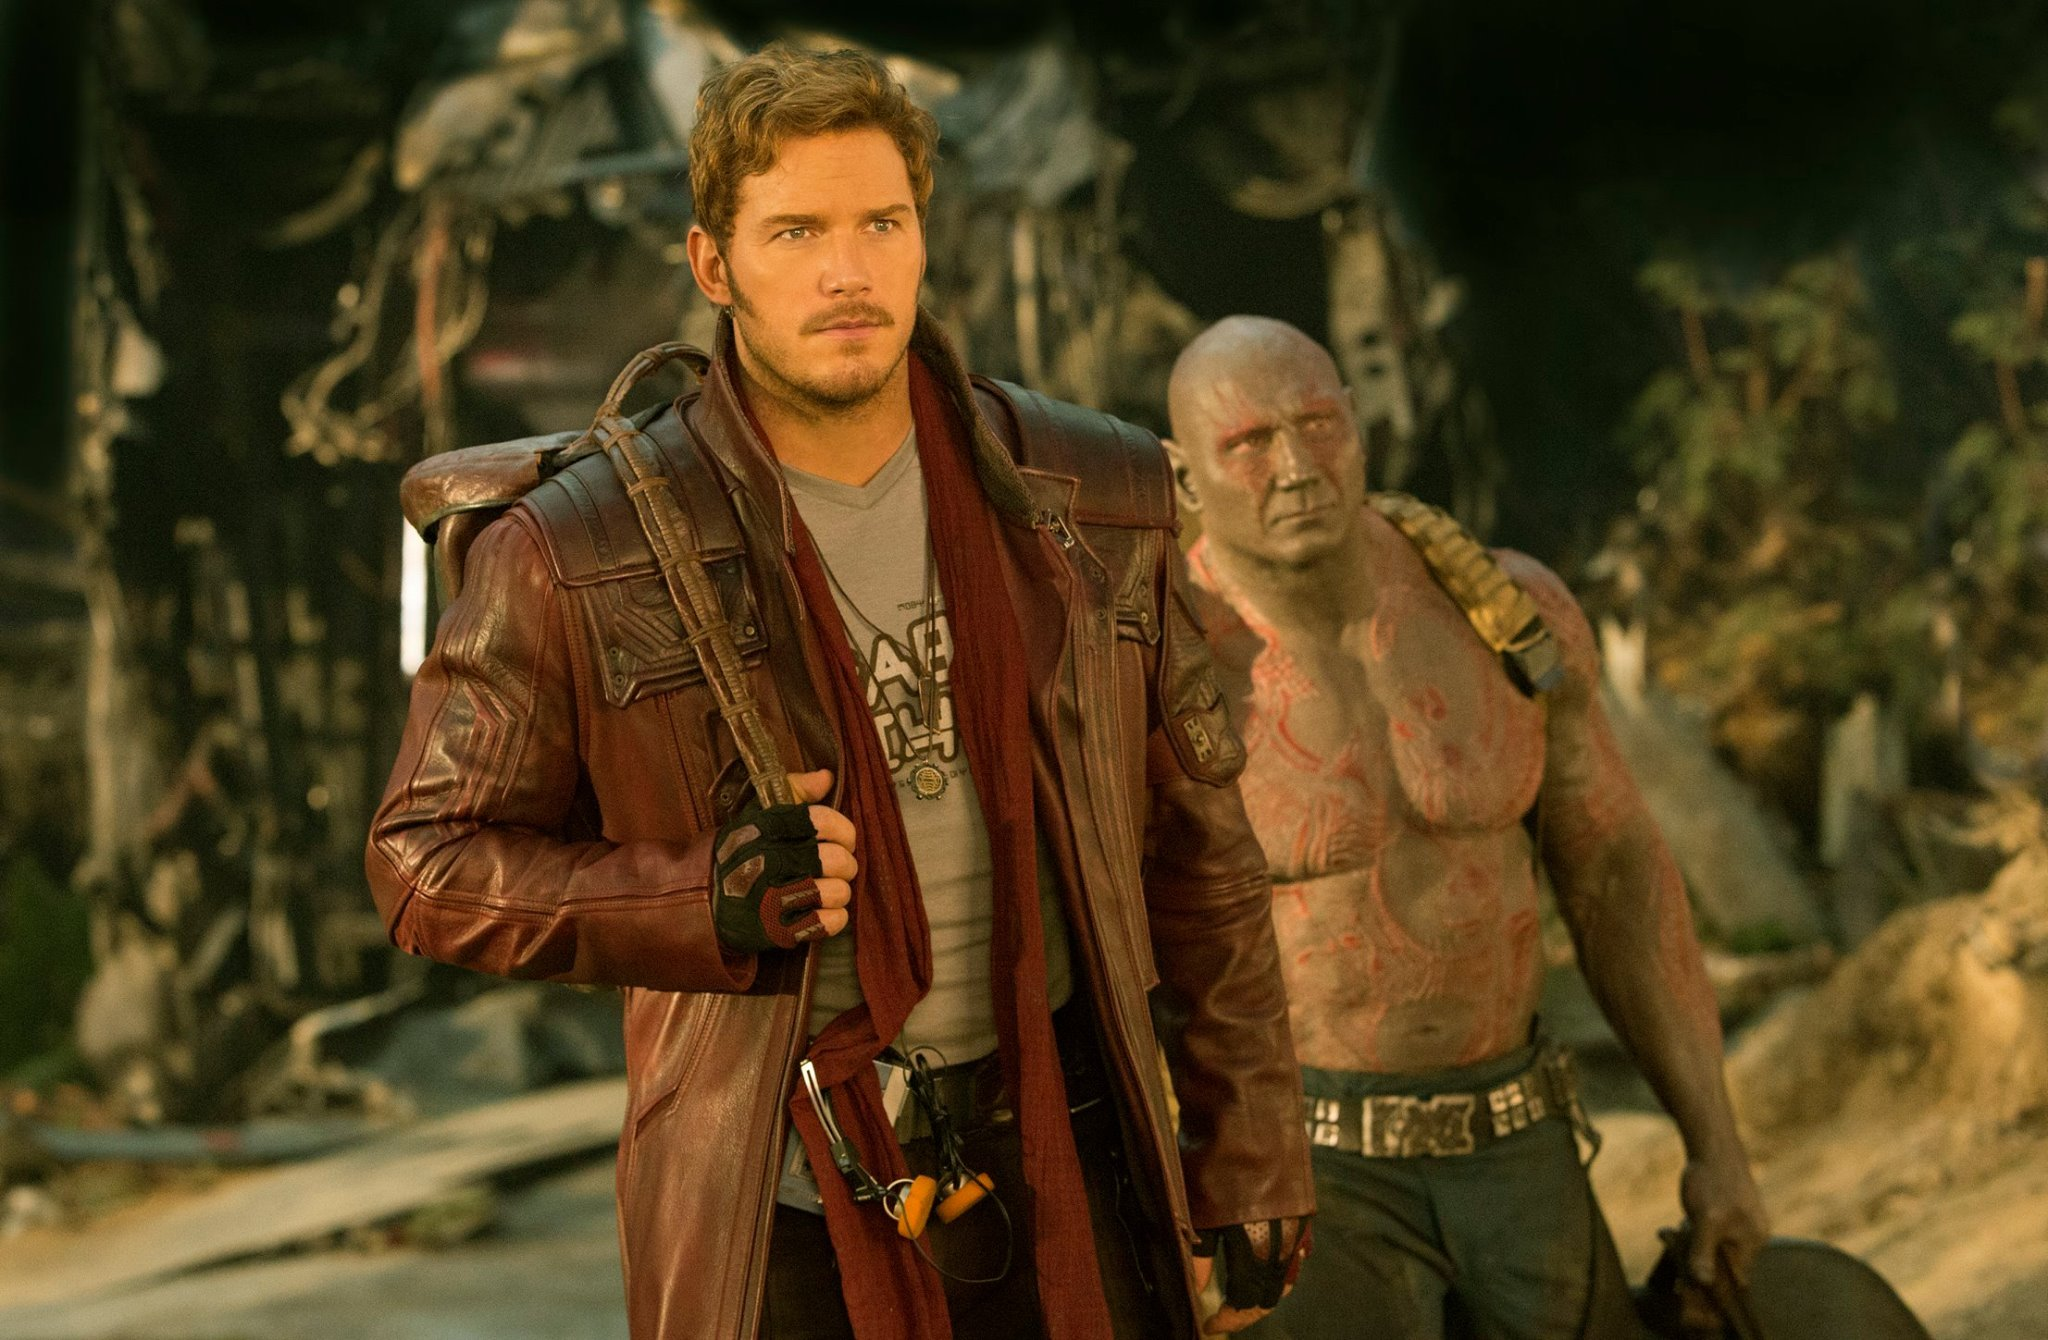 Star-Lord Gets His Dance And Drax Goes On A Rampage In Four New Clips For Guardians Of The Galaxy Vol. 2